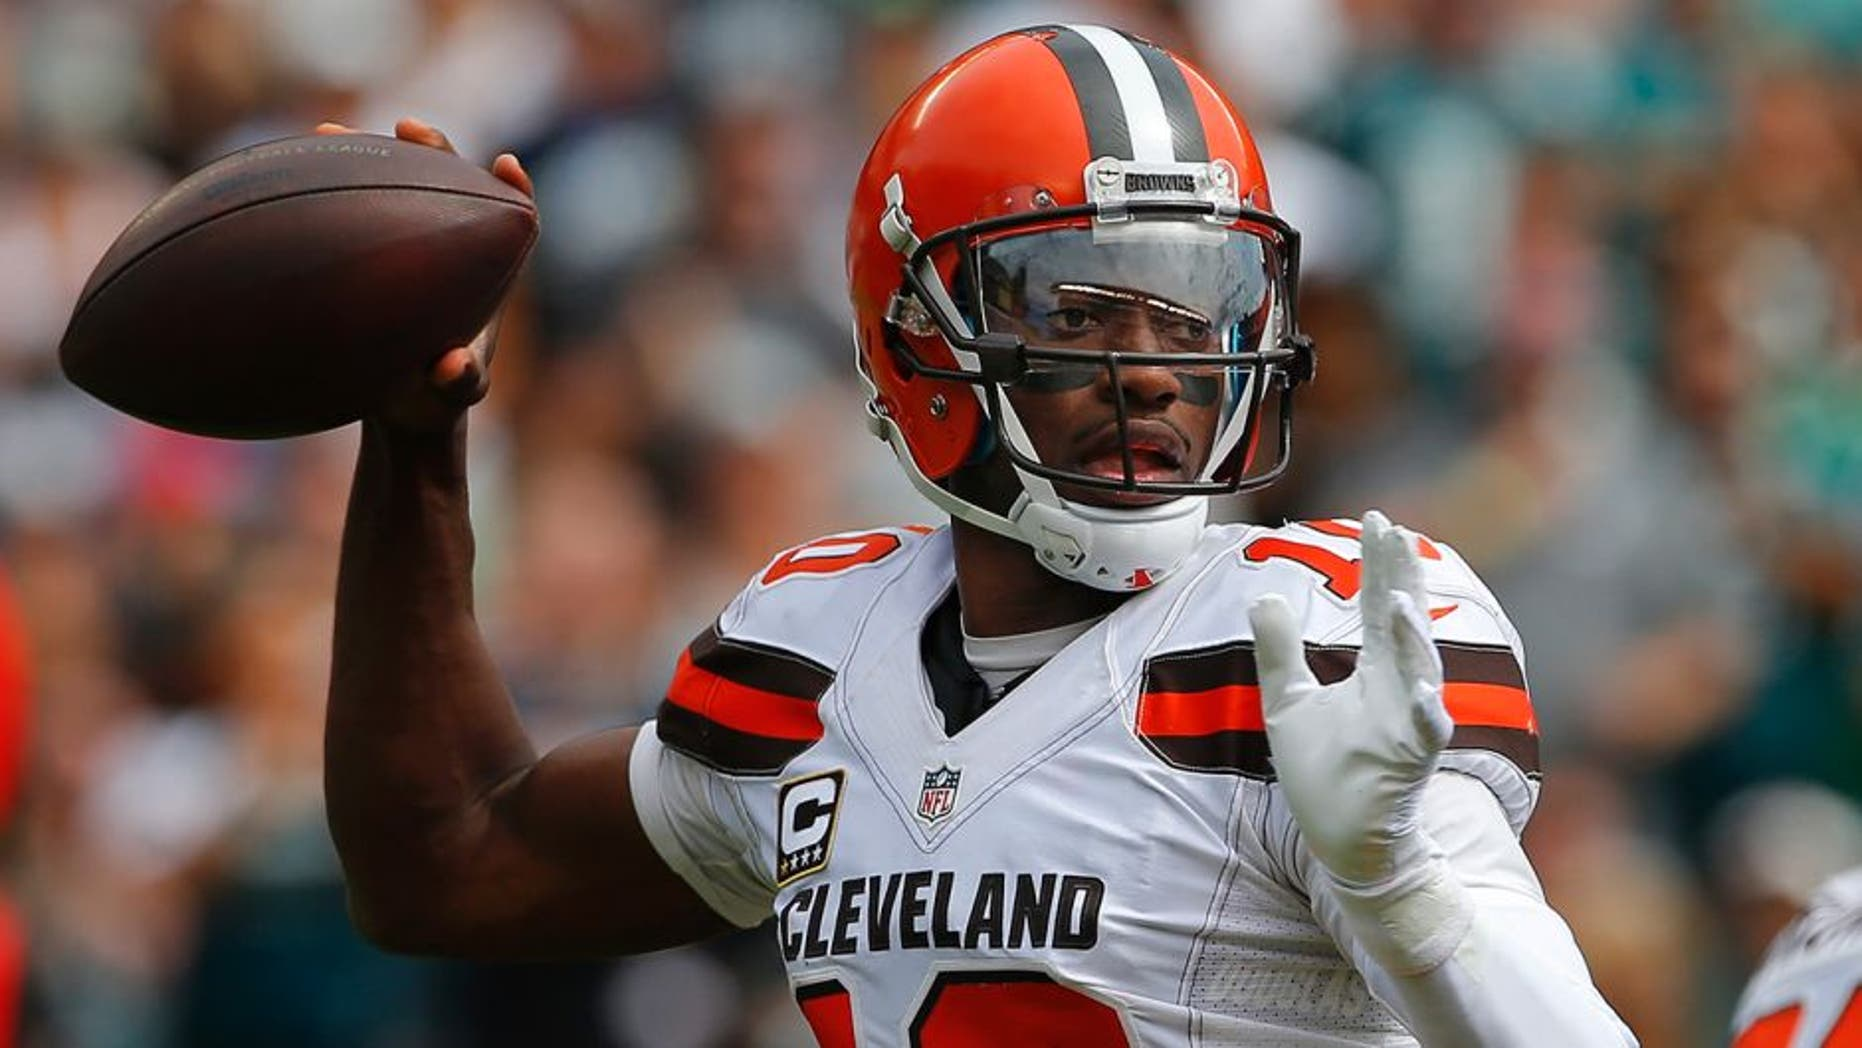 PHILADELPHIA, PA - SEPTEMBER 11: Quarterback Robert Griffin III #10 of the Cleveland Browns looks to pass against the Philadelphia Eagles during the first quarter at Lincoln Financial Field on September 11, 2016 in Philadelphia, Pennsylvania. (Photo by Rich Schultz/Getty Images)